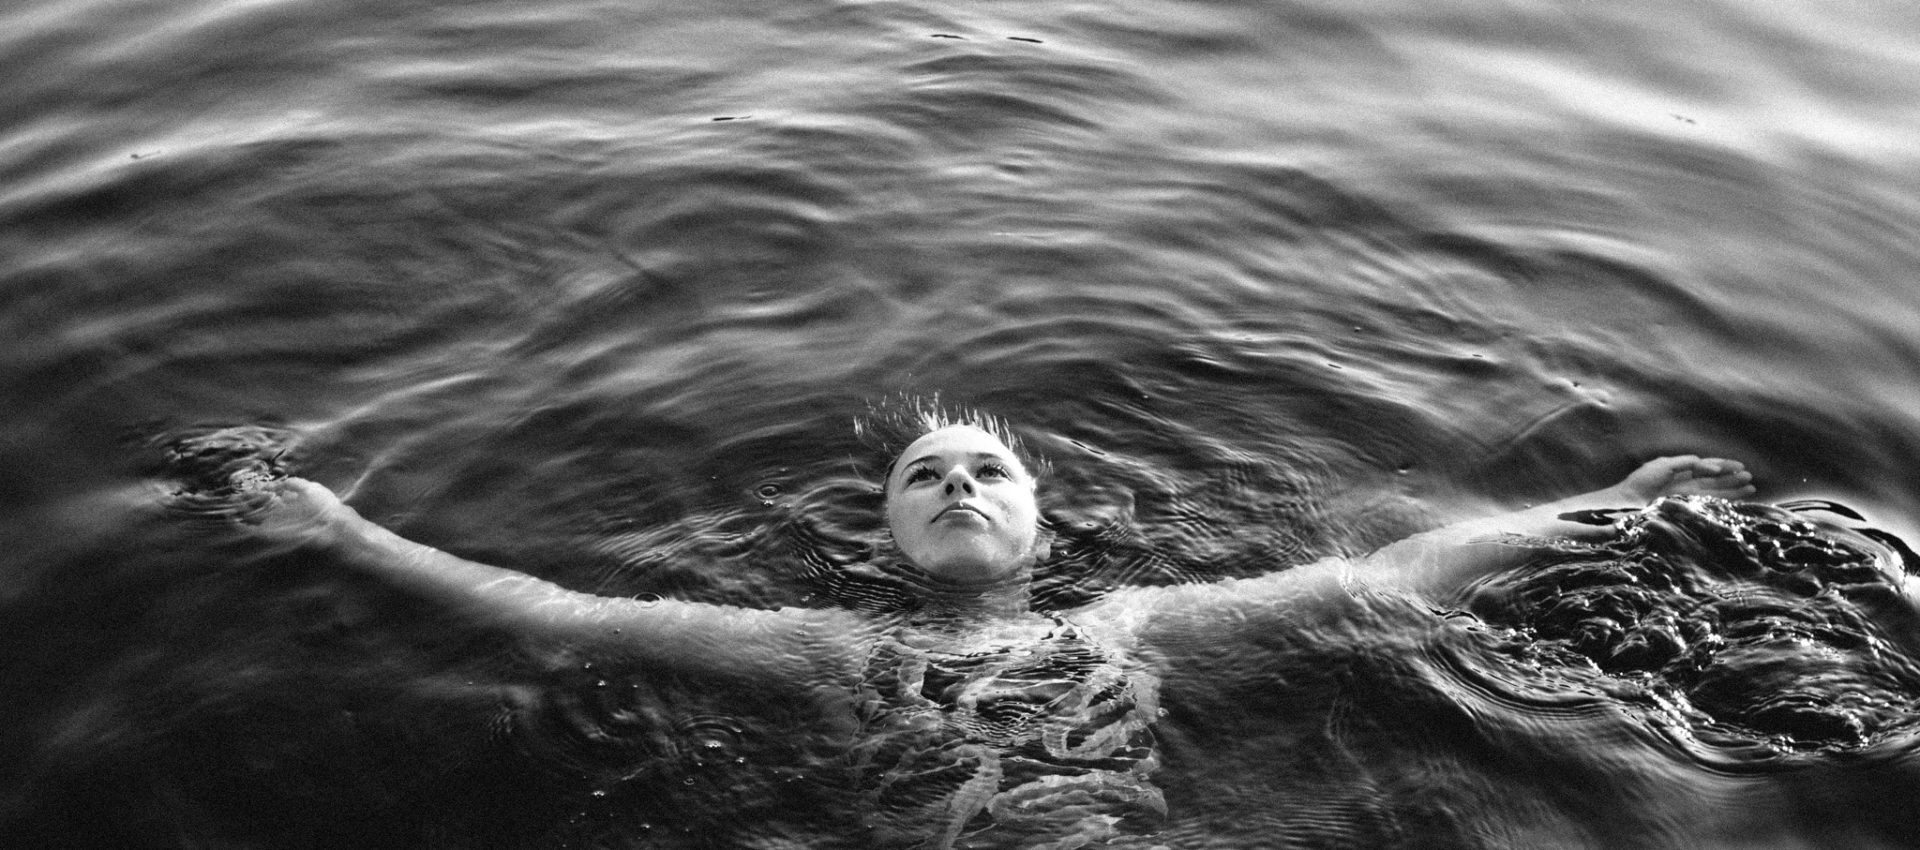 Black and white image of girl floating in lake with outstretched arms by Seattle area family photographer Jessica Uhler